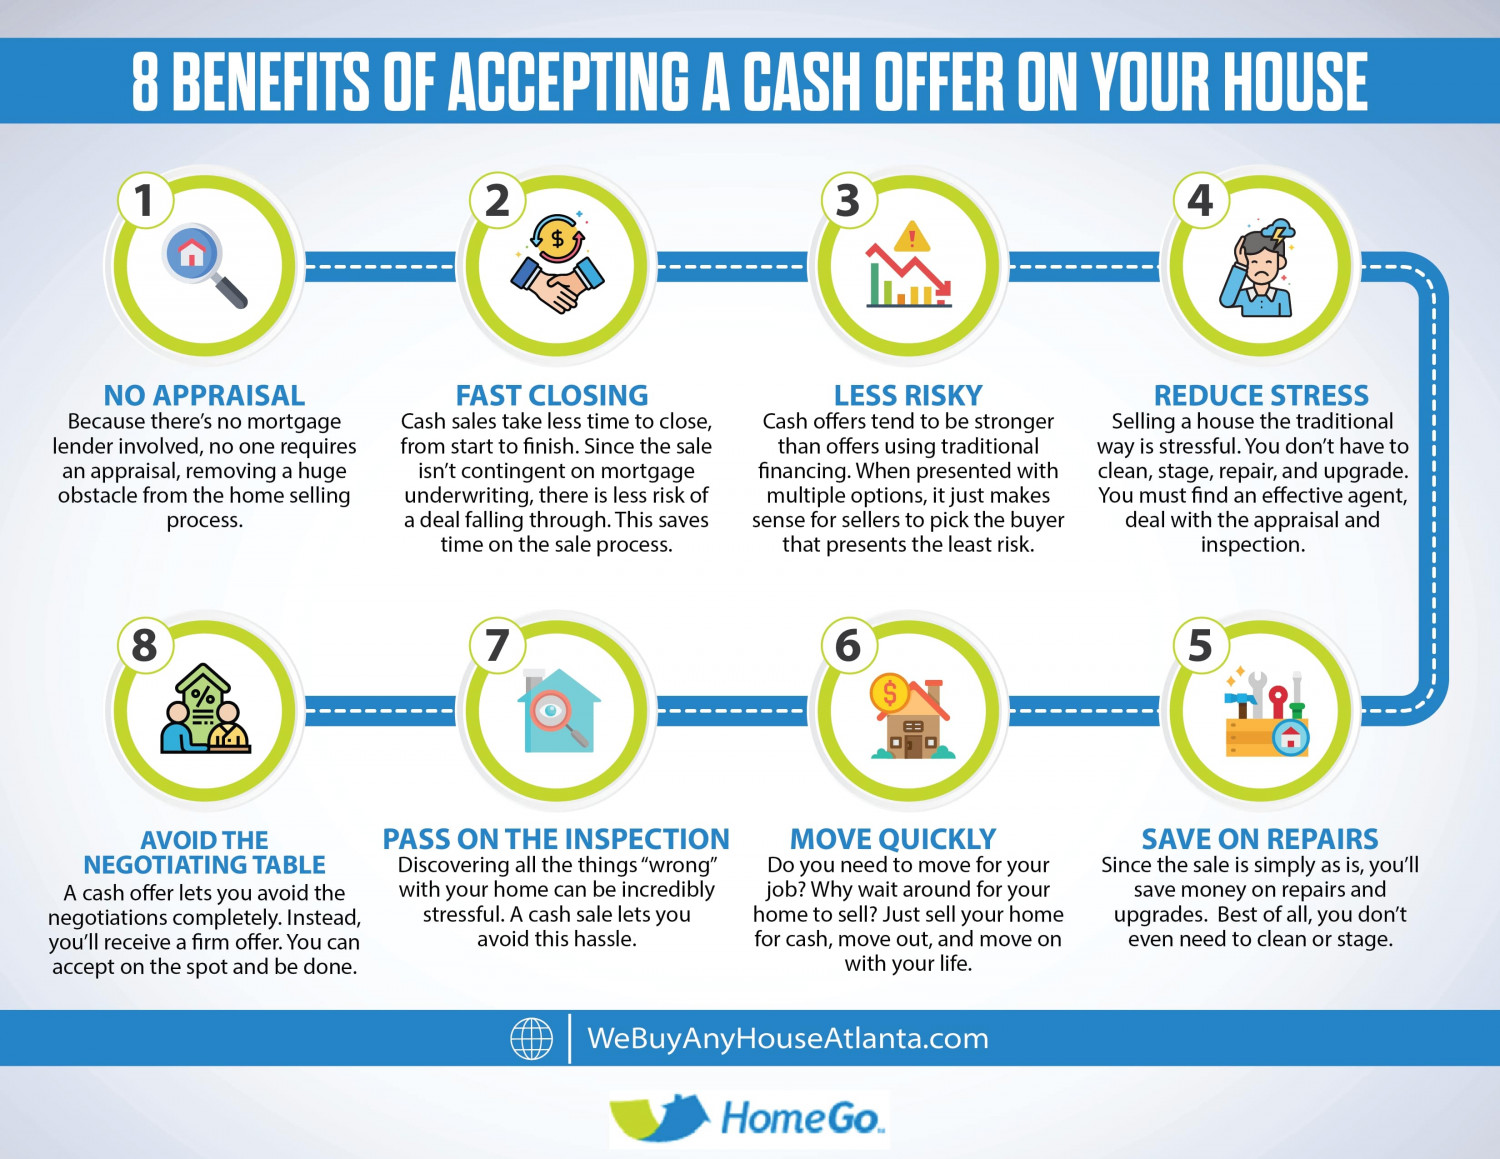 8 Benefits of Accepting A Cash Offer on Your House Infographic